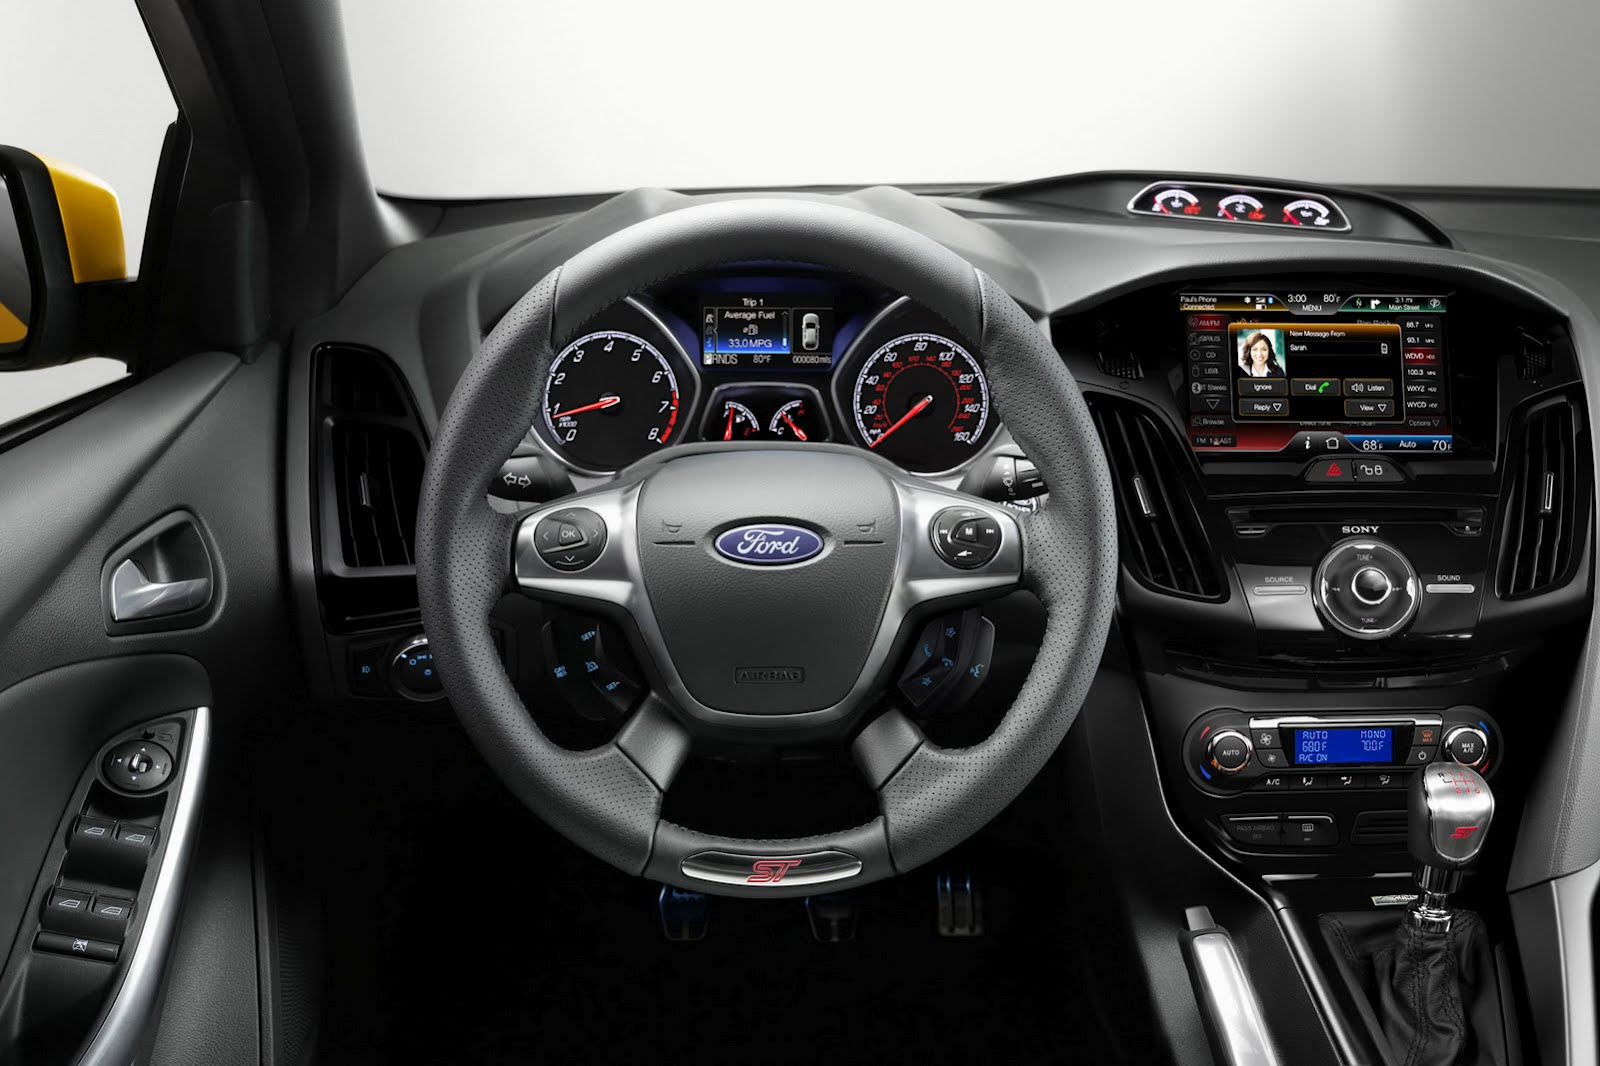 2013 Ford Focus St #9